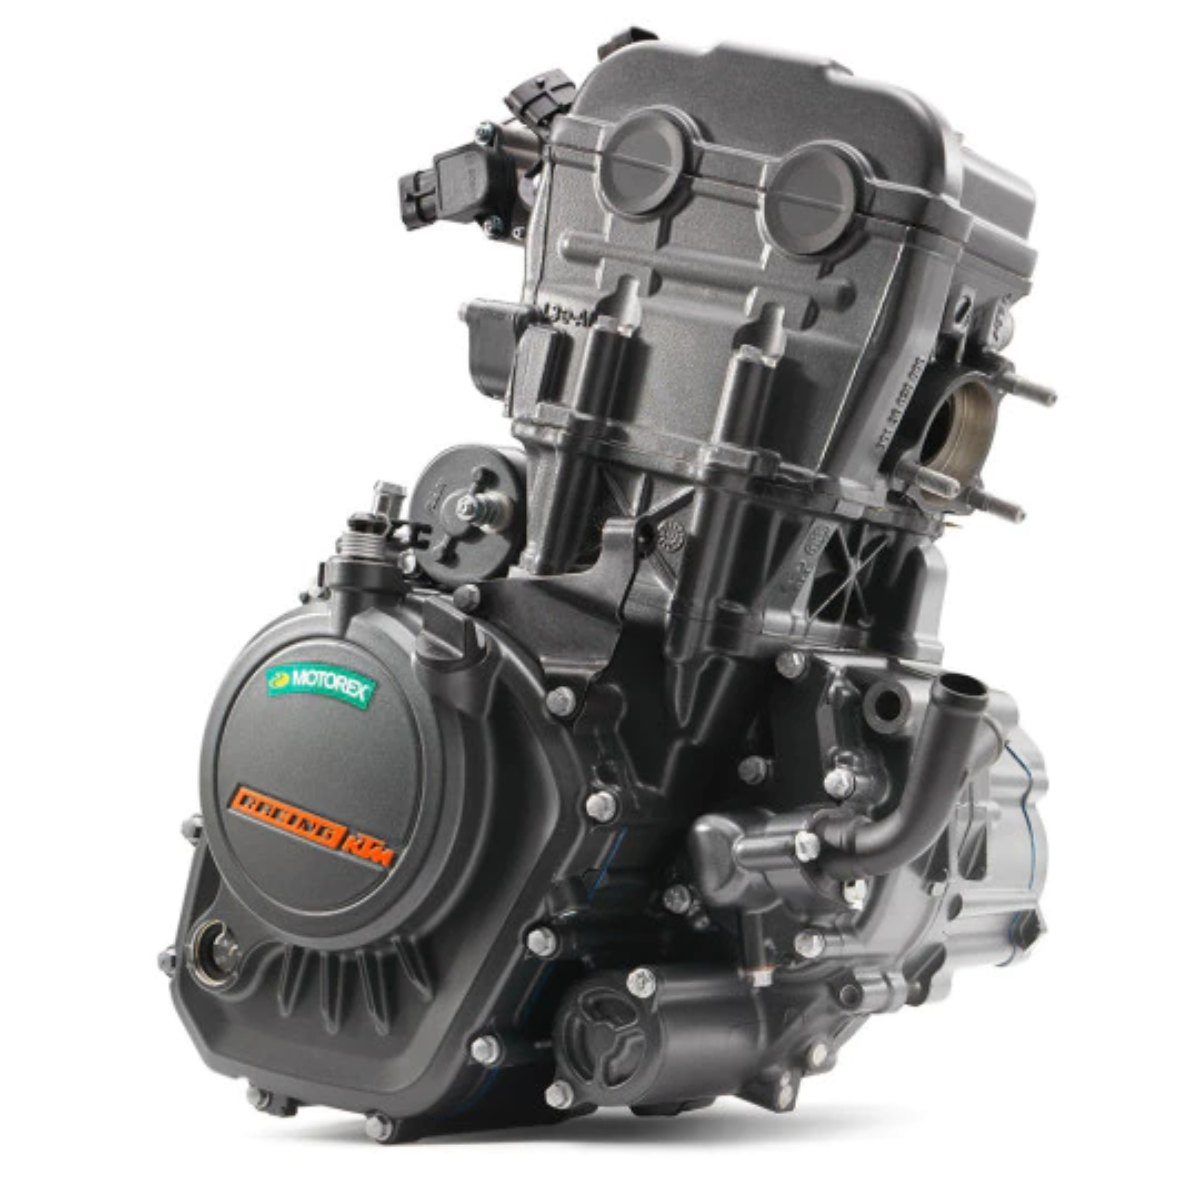 2021 KTM RC 200 and RC 125